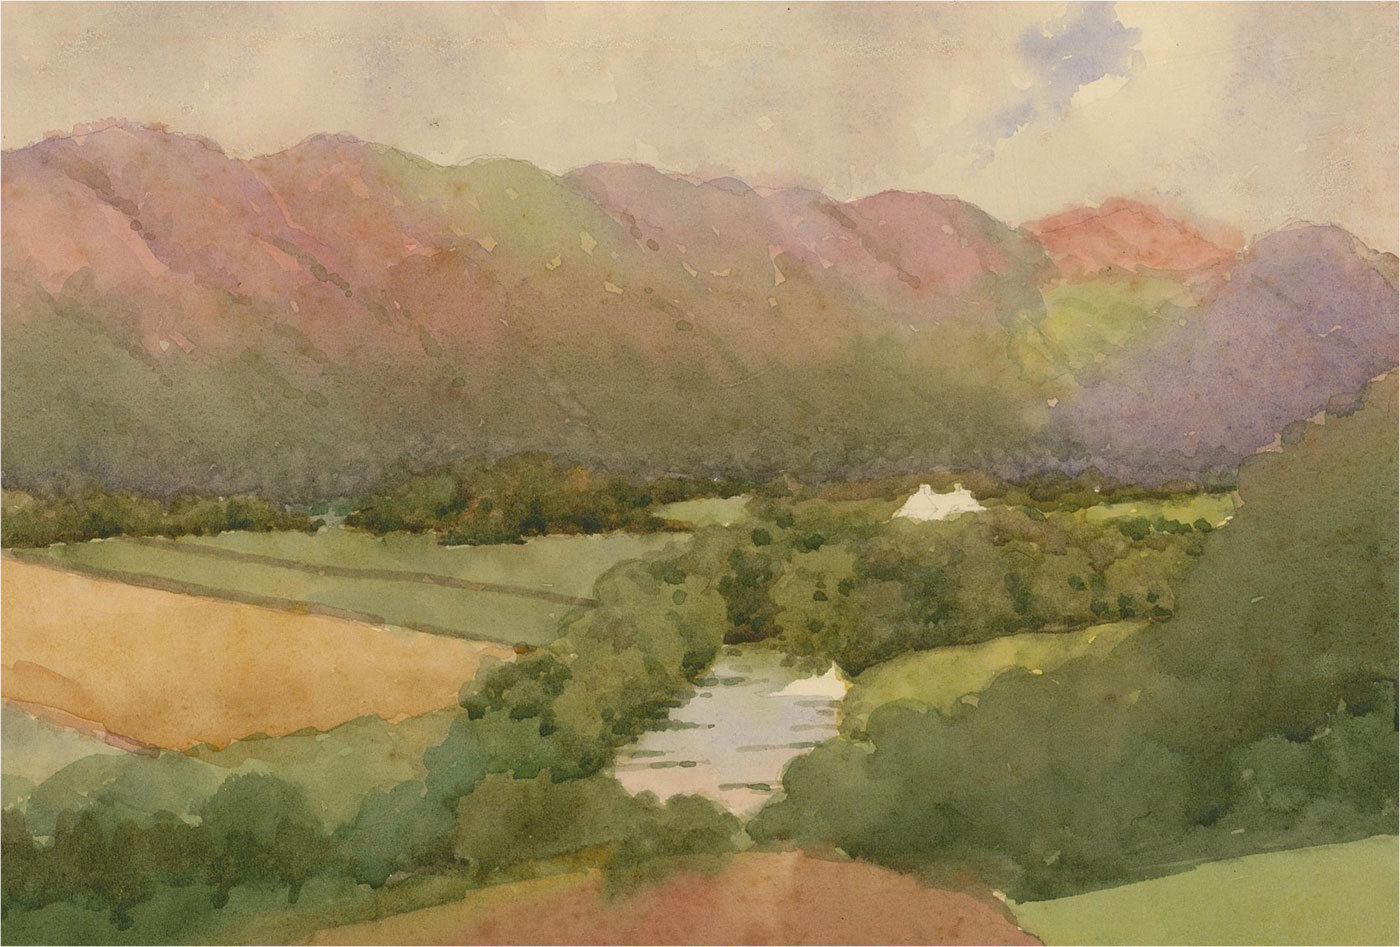 Raymond Turner Barker (1872-1945) - Early 20th Century Watercolour, River Valley